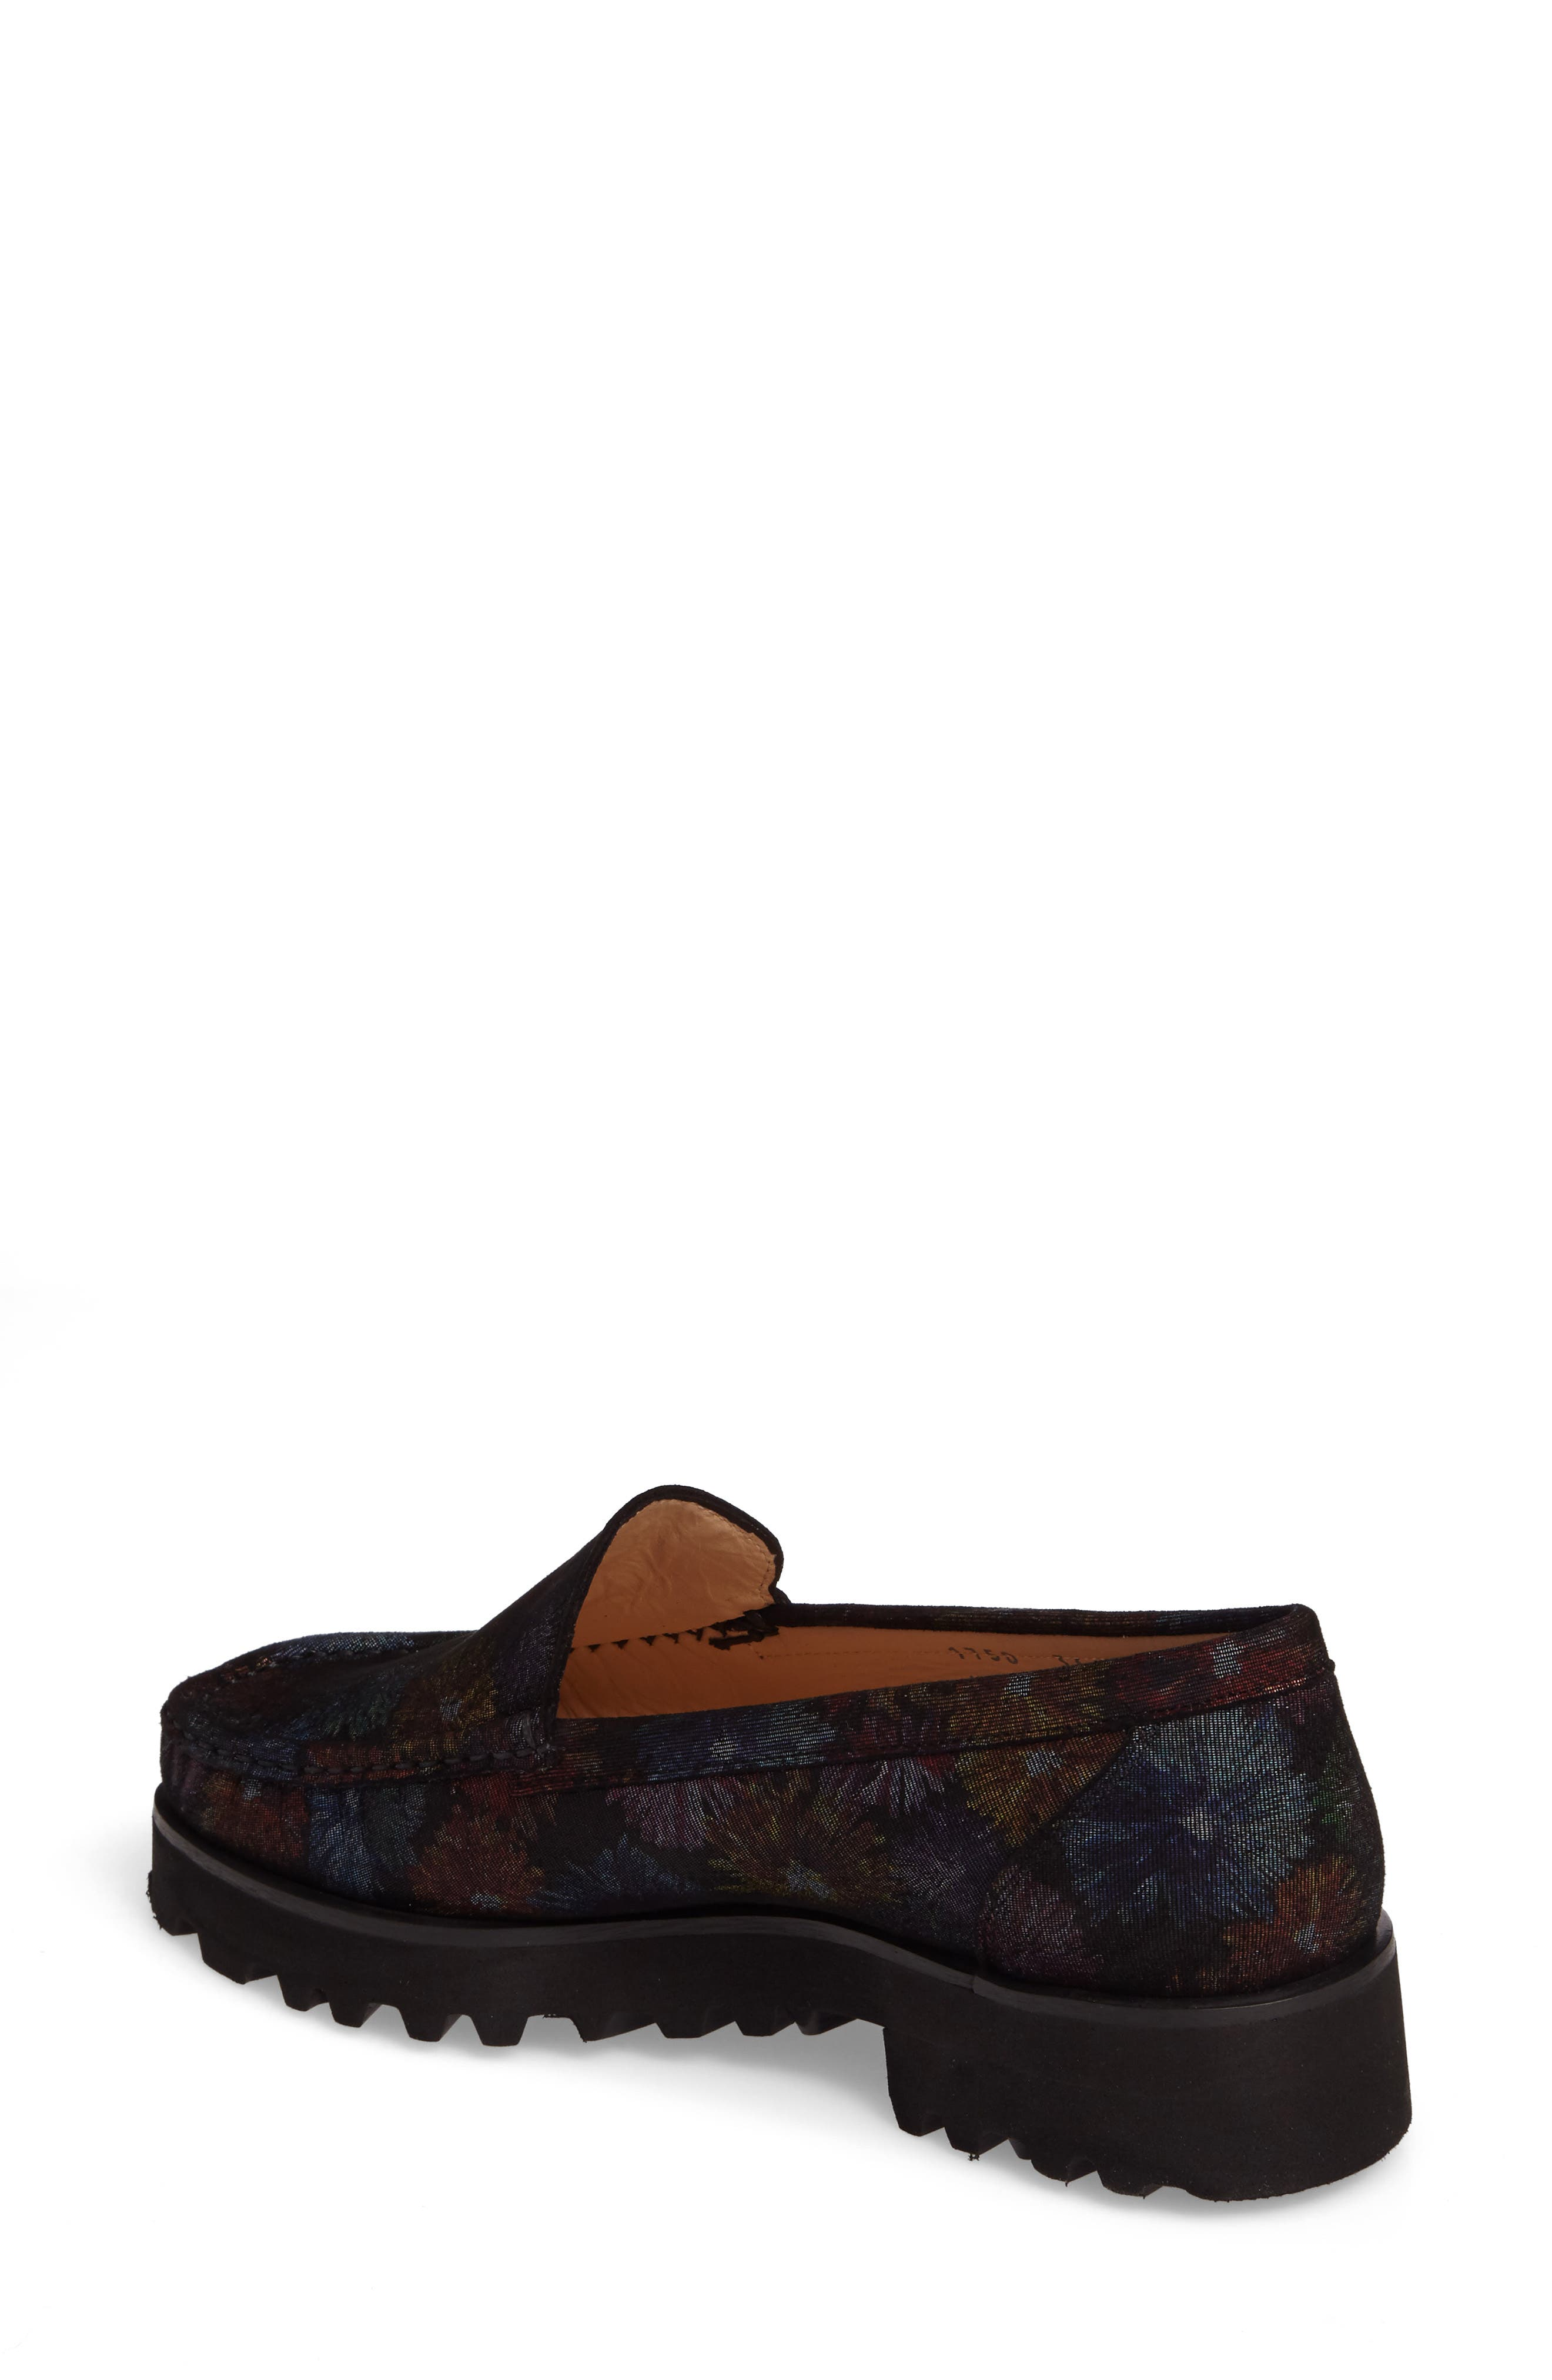 Rita Floral Water Resistant Penny Loafer,                             Alternate thumbnail 2, color,                             400